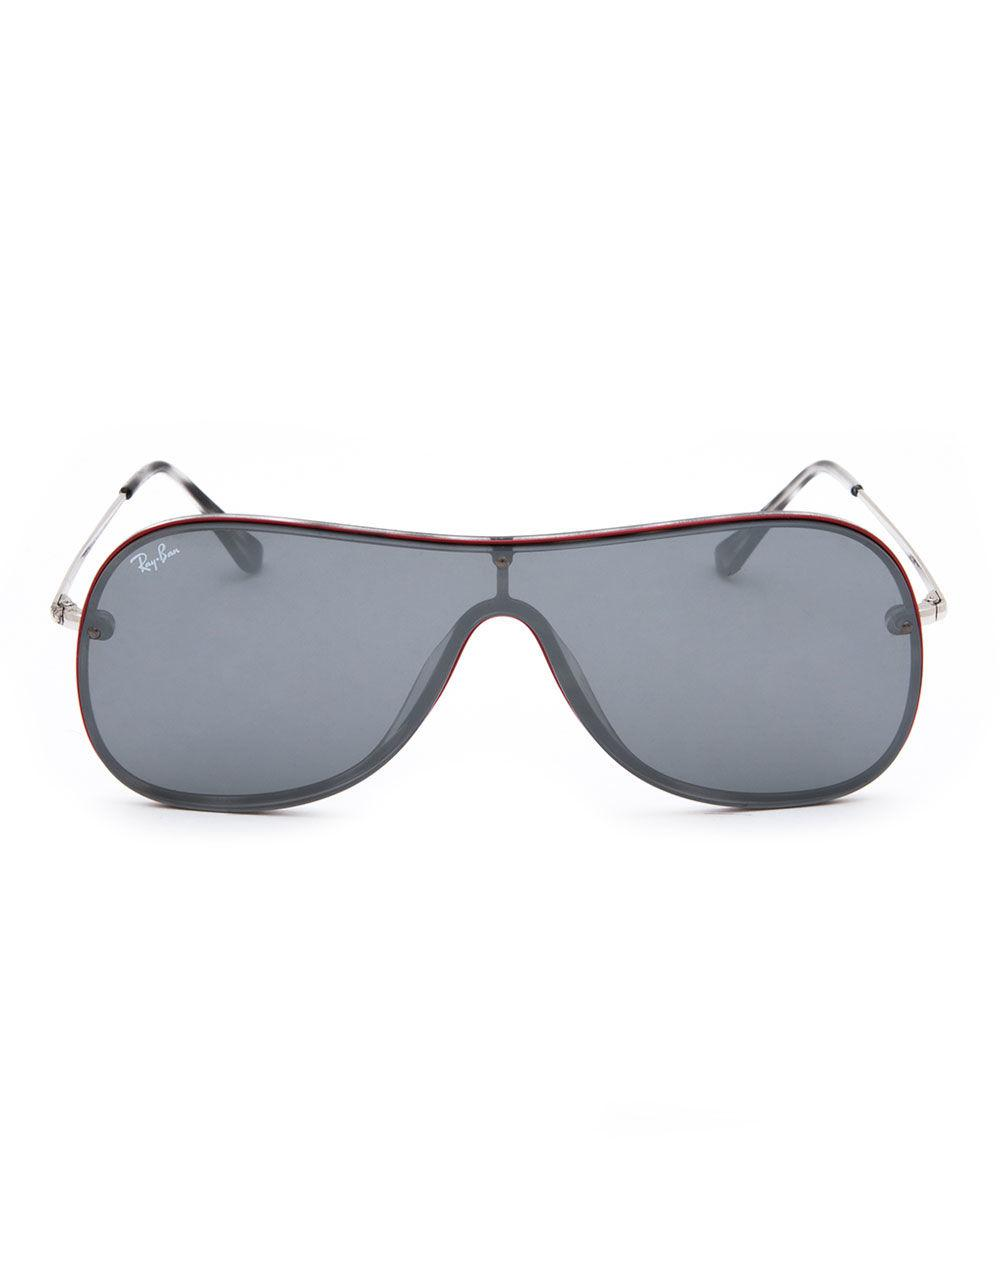 799ab43c8b Lyst - Ray-Ban Flat Lens Rb4311-n Sunglasses in Gray for Men